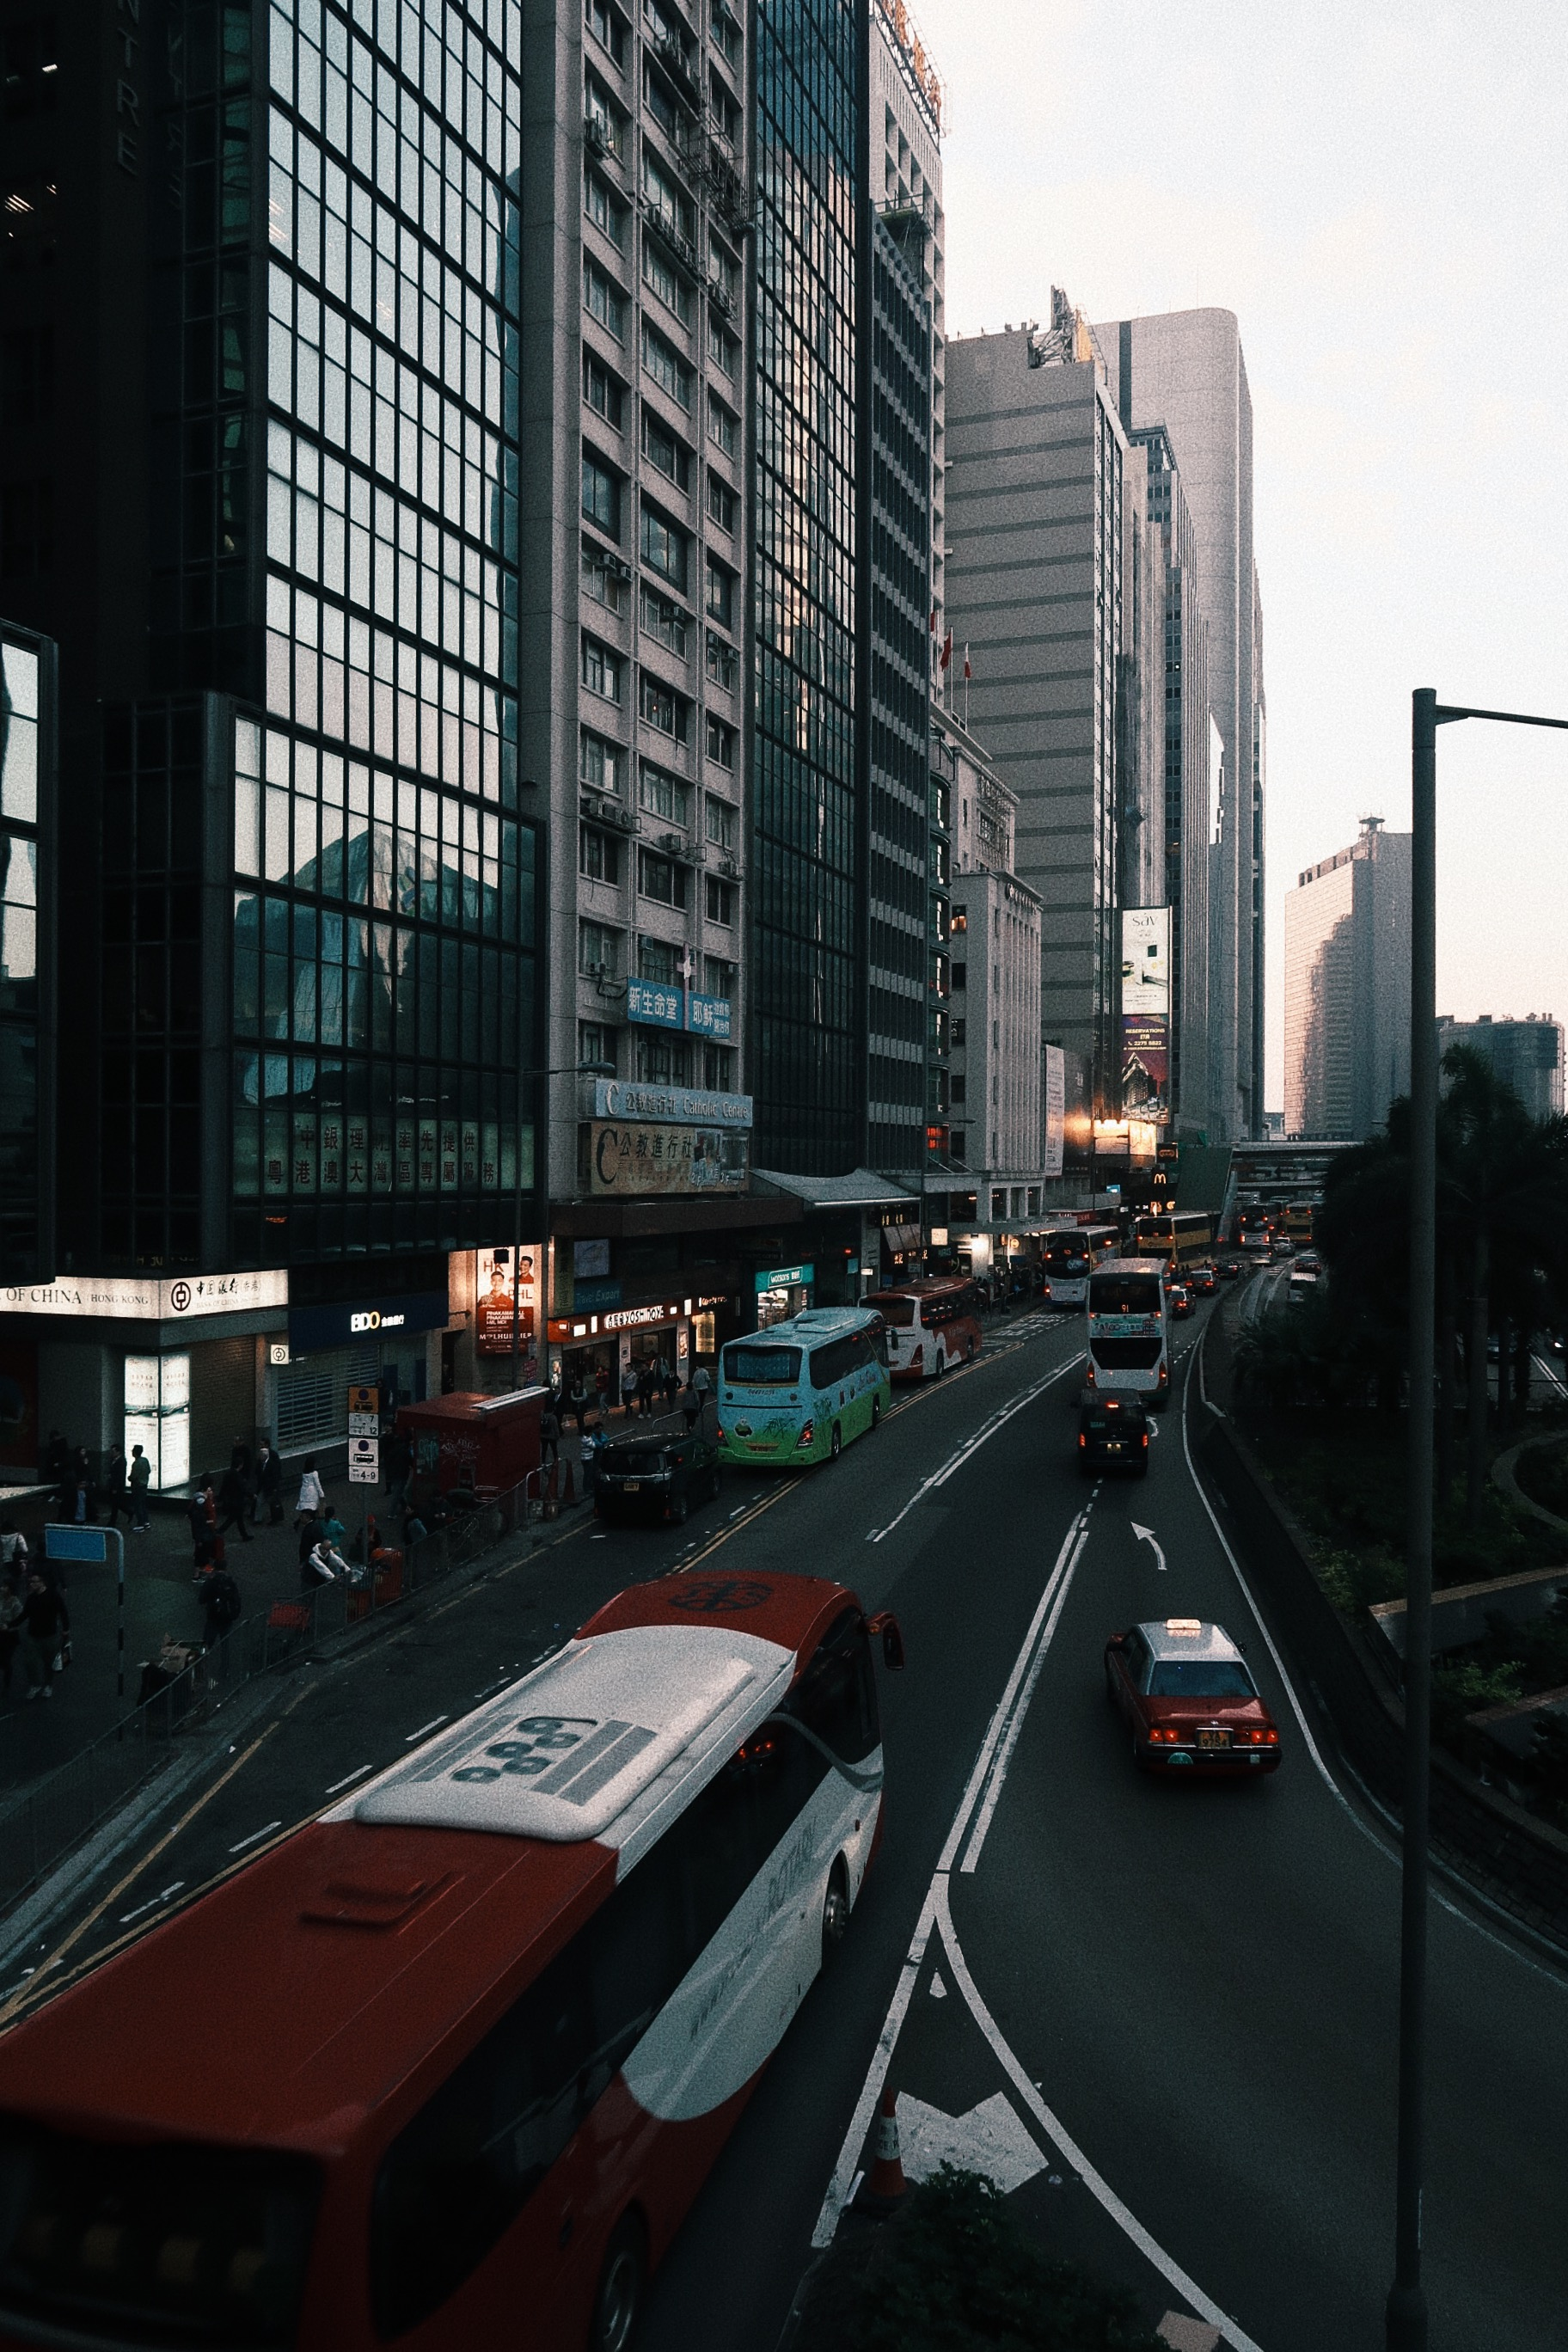 Processed with VSCO with j4 preset